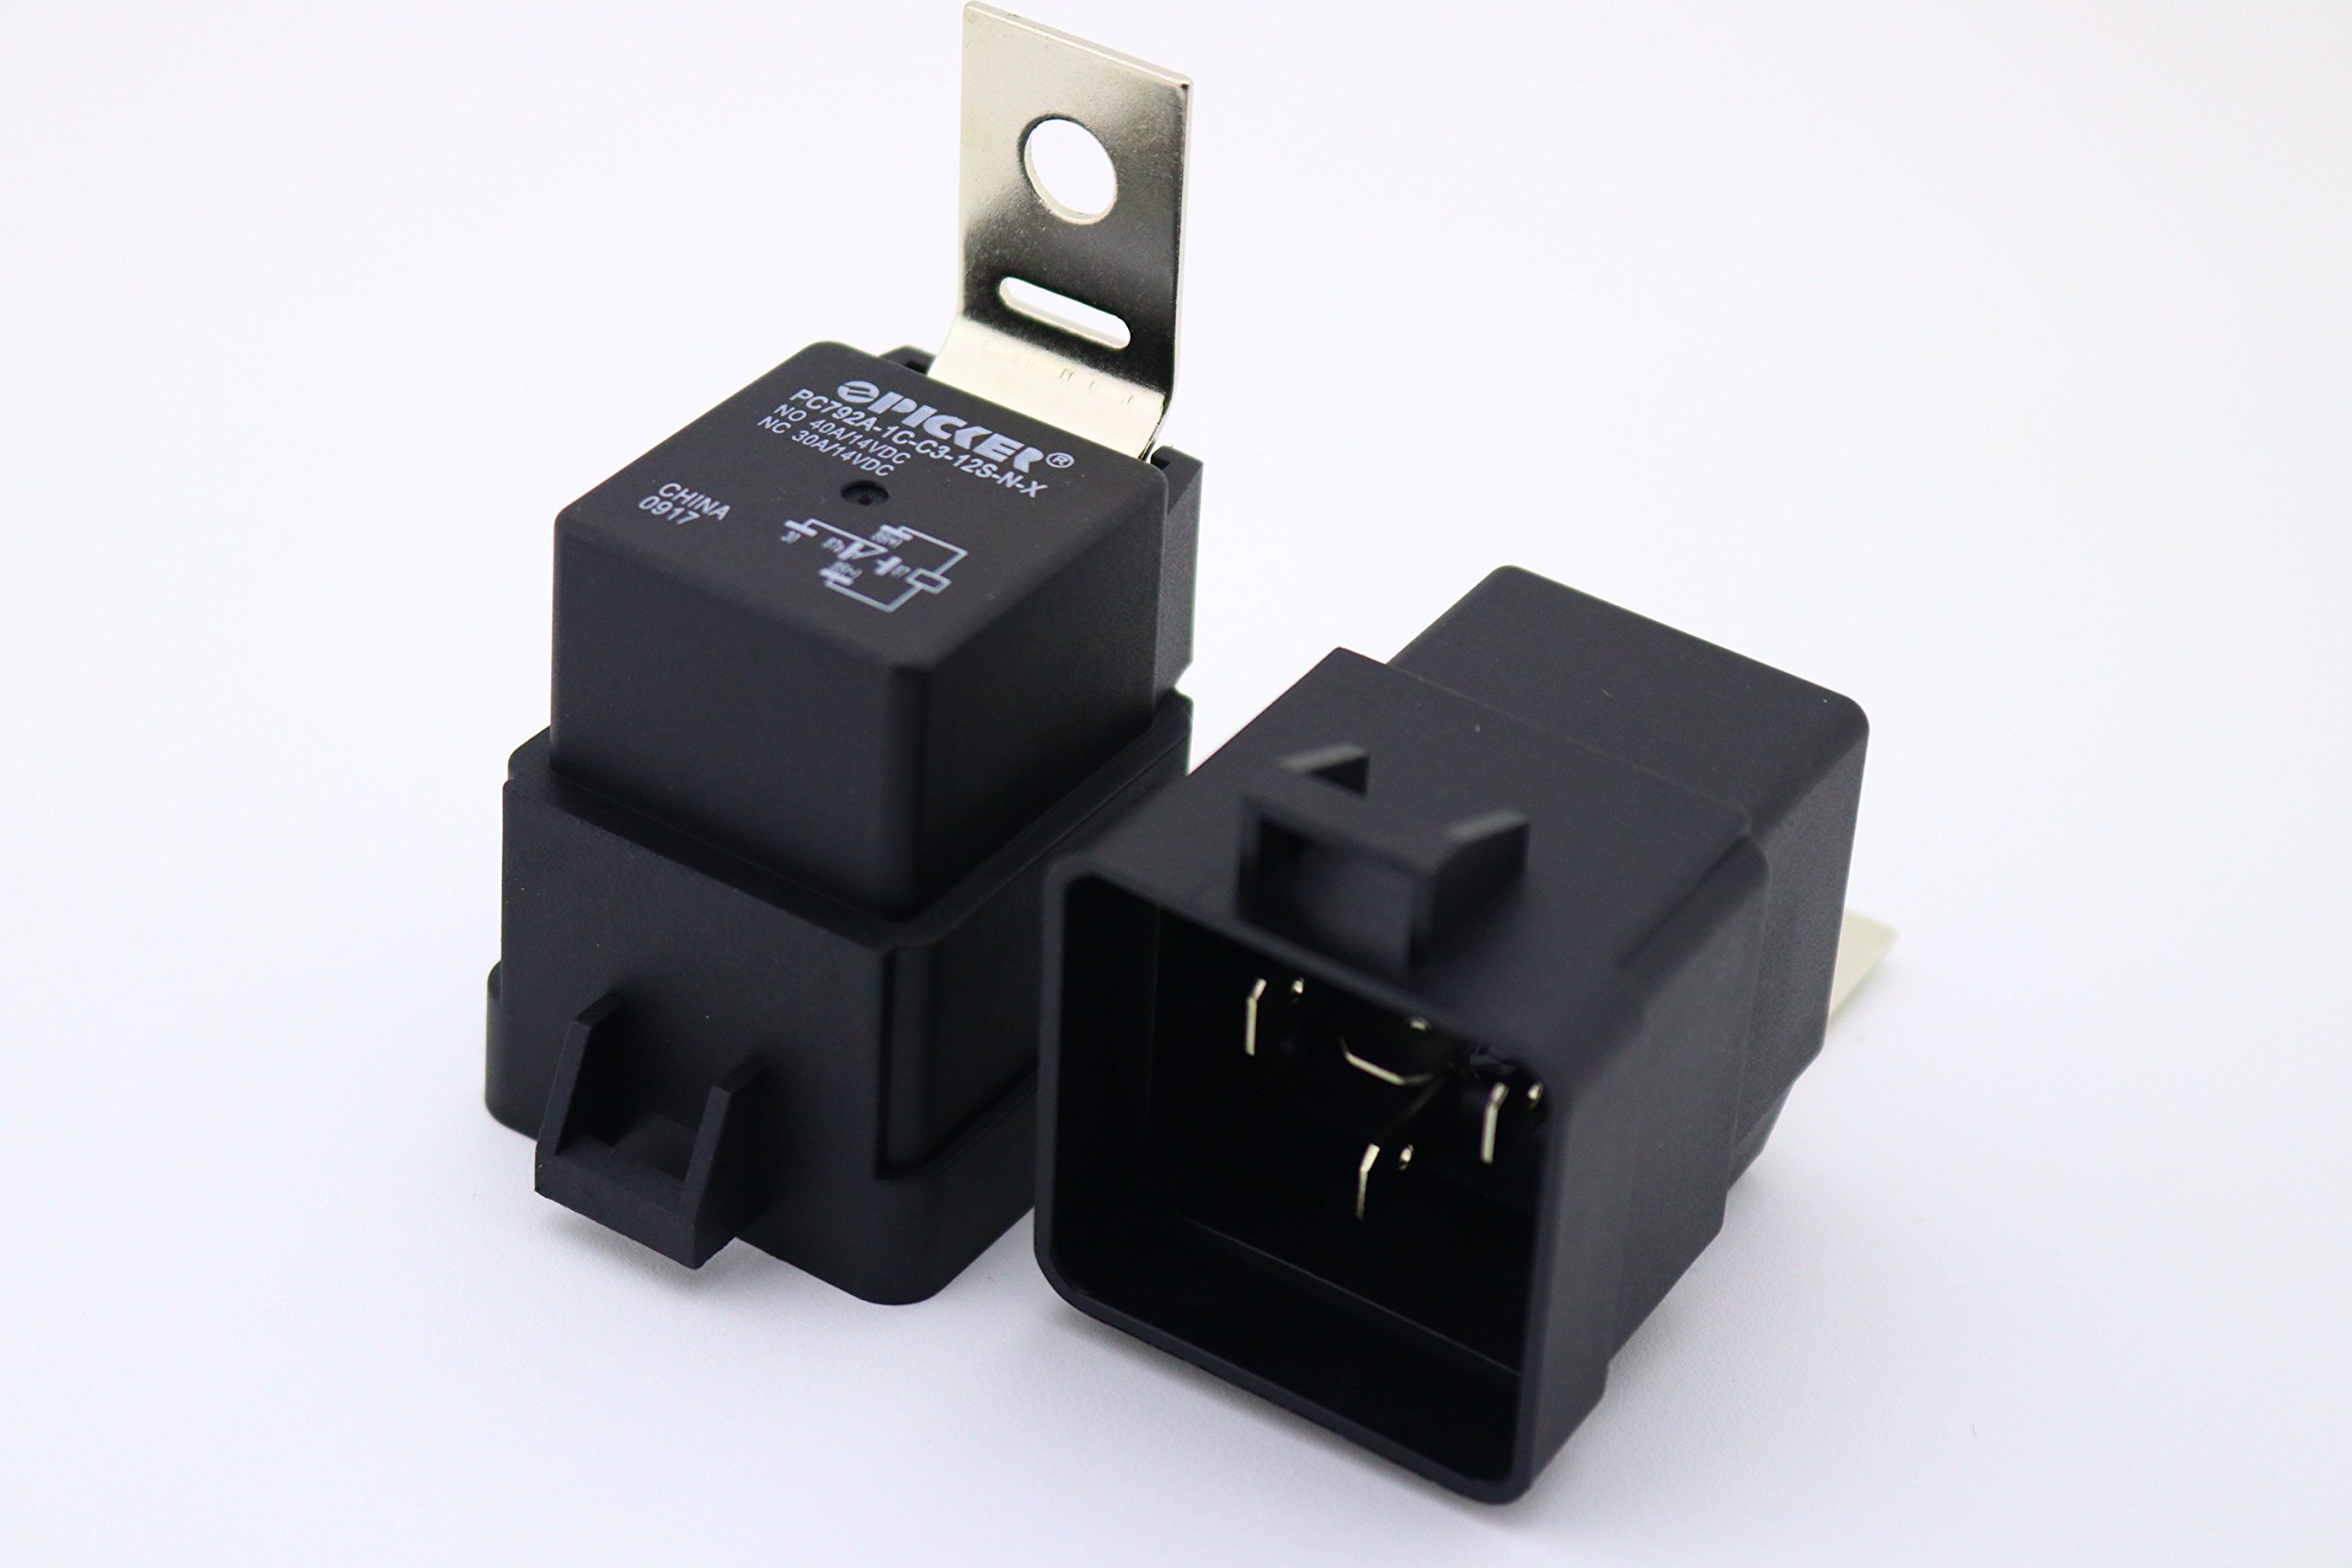 (x2) PC792A-1C-C3-12S-N-X-2 | 5 Pin SPDT 12 VDC Coil, 40/30 Amp, Mini ISO Sealed Automotive Plug-in Relay in a Weatherproof Case with Metal Mounting Brackets